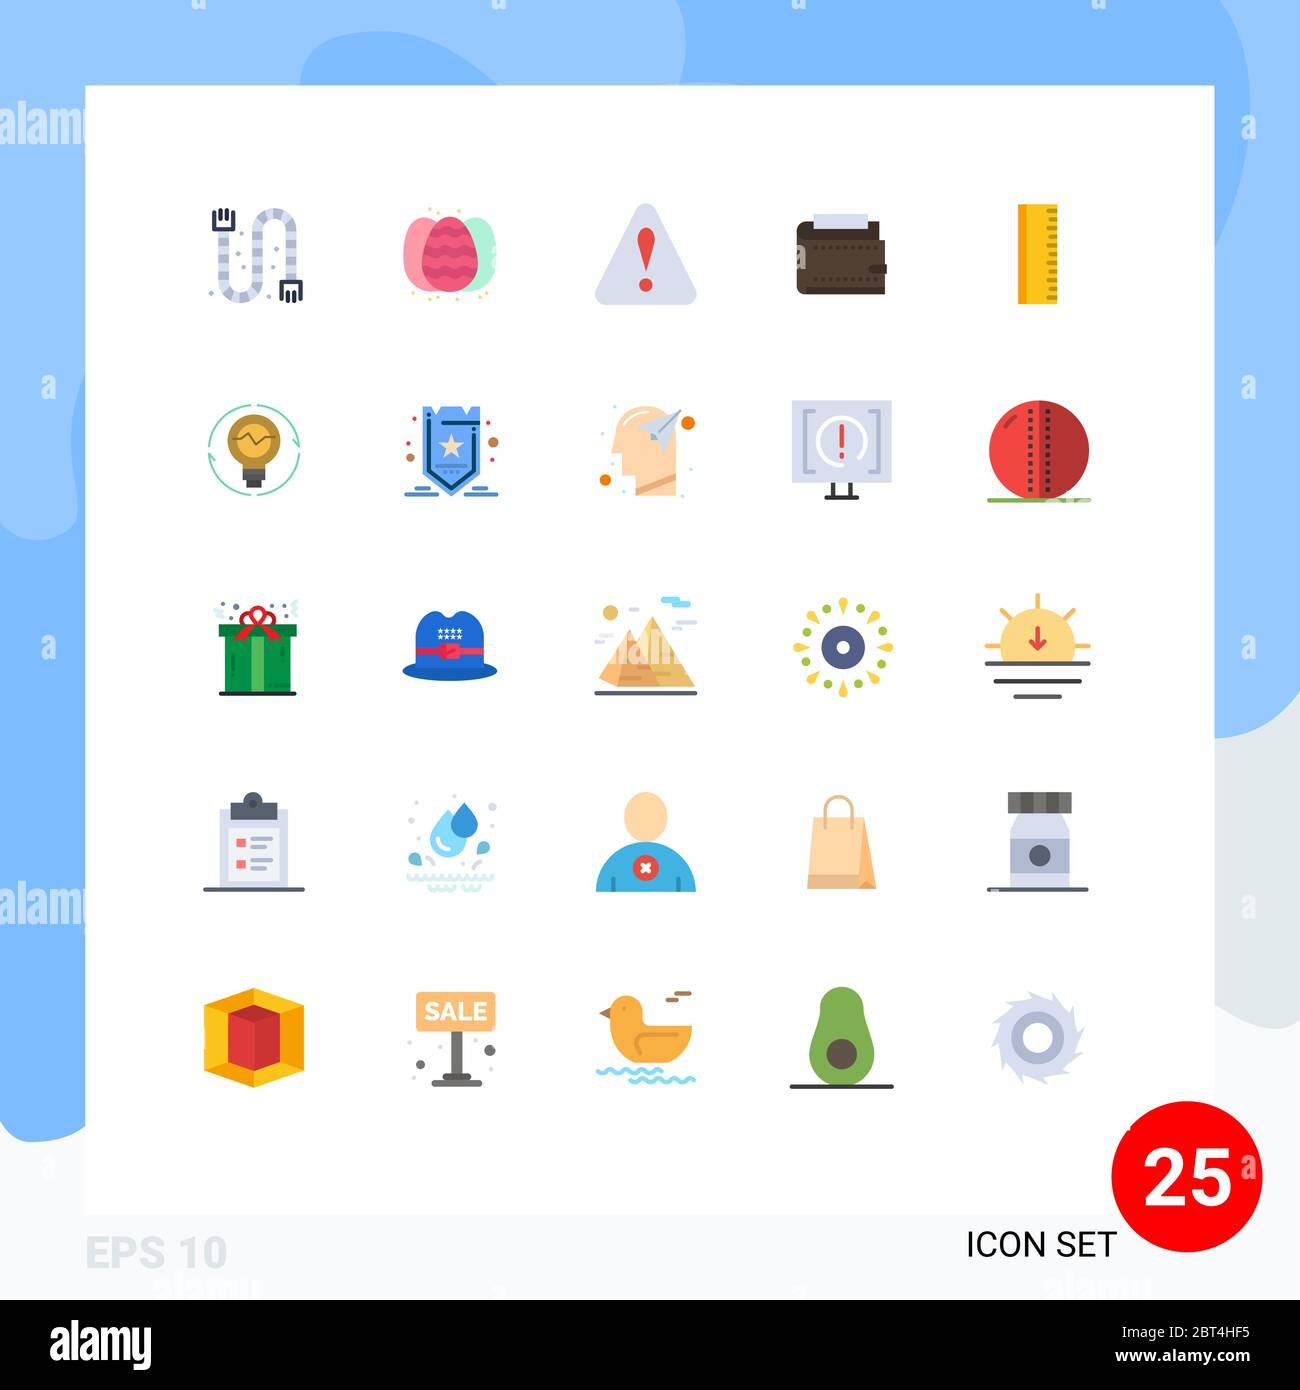 25 Flat Color Concept For Websites Mobile And Apps Education Personal Alert Money Cash Editable Vector Design Elements Stock Vector Image Art Alamy